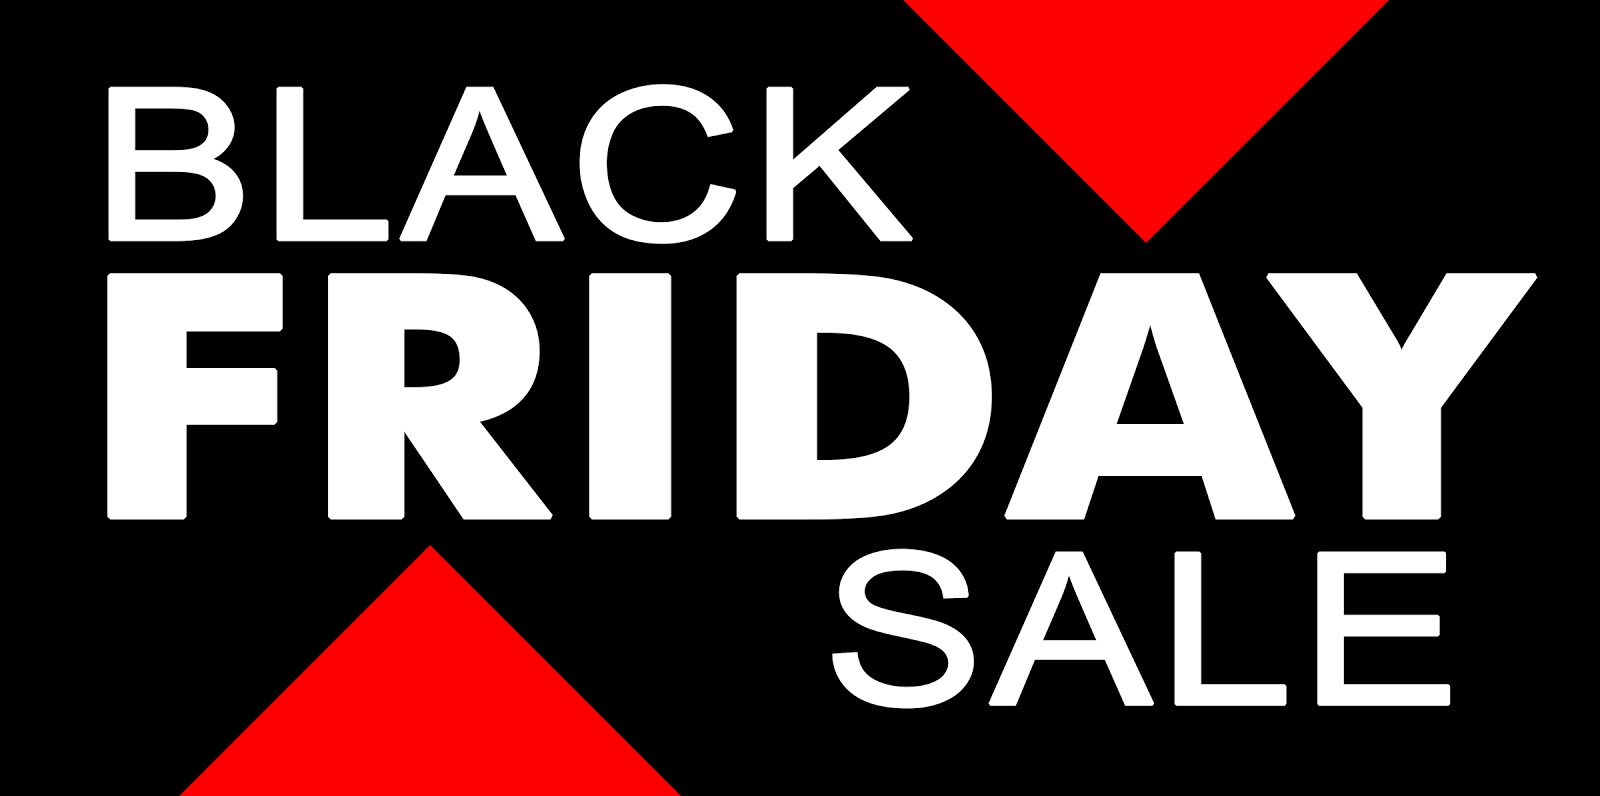 Back Friday Banners Black Friday Banner Templates